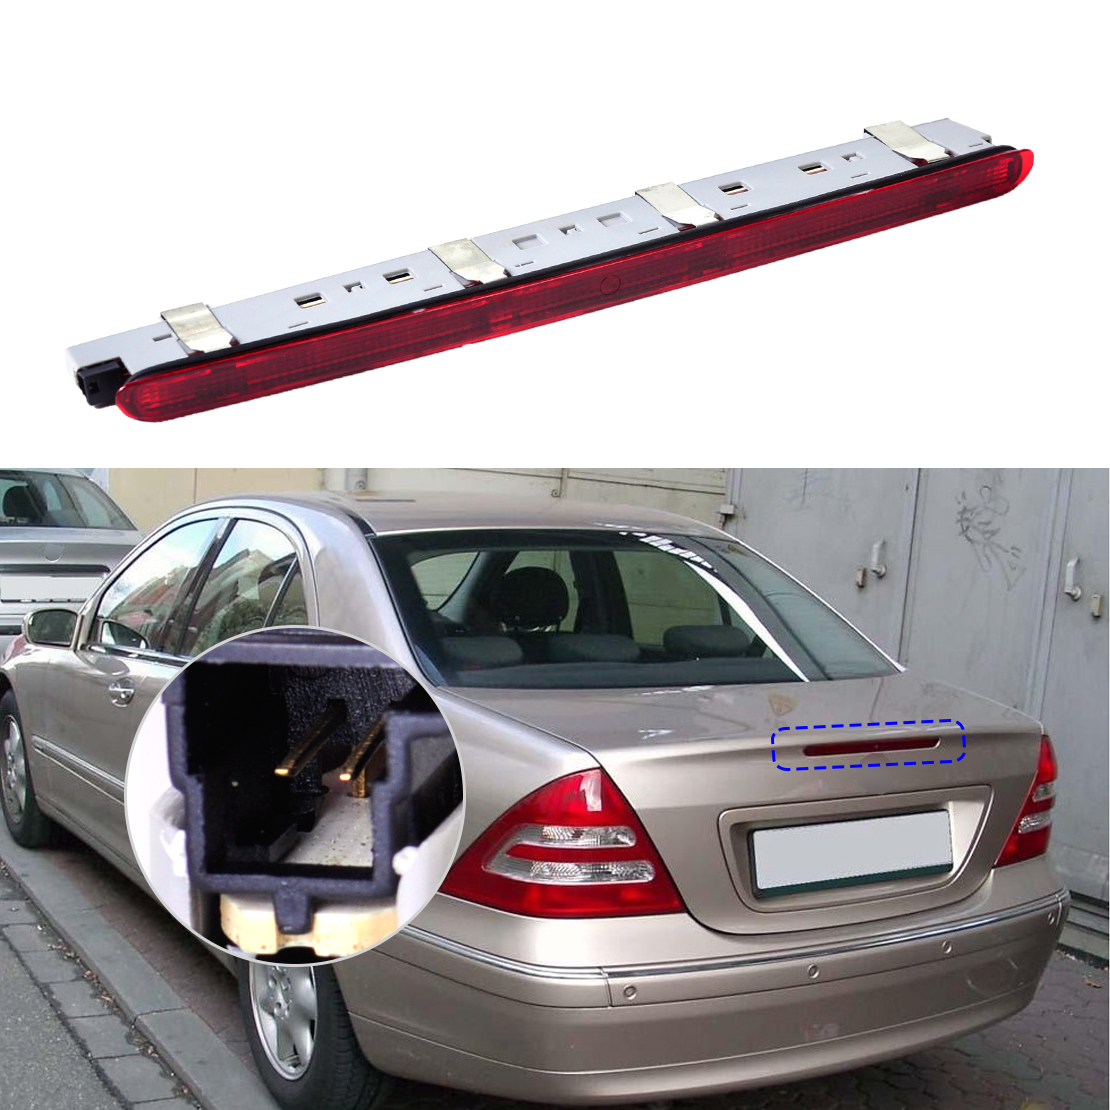 DWCX 2038201456 2038200156 1PC Rear Tail Stop Lamp Third Brake Light for <font><b>Mercedes</b></font> <font><b>Benz</b></font> W203 <font><b>C230</b></font> C240 2000 - 2004 2004 2006 2007 image